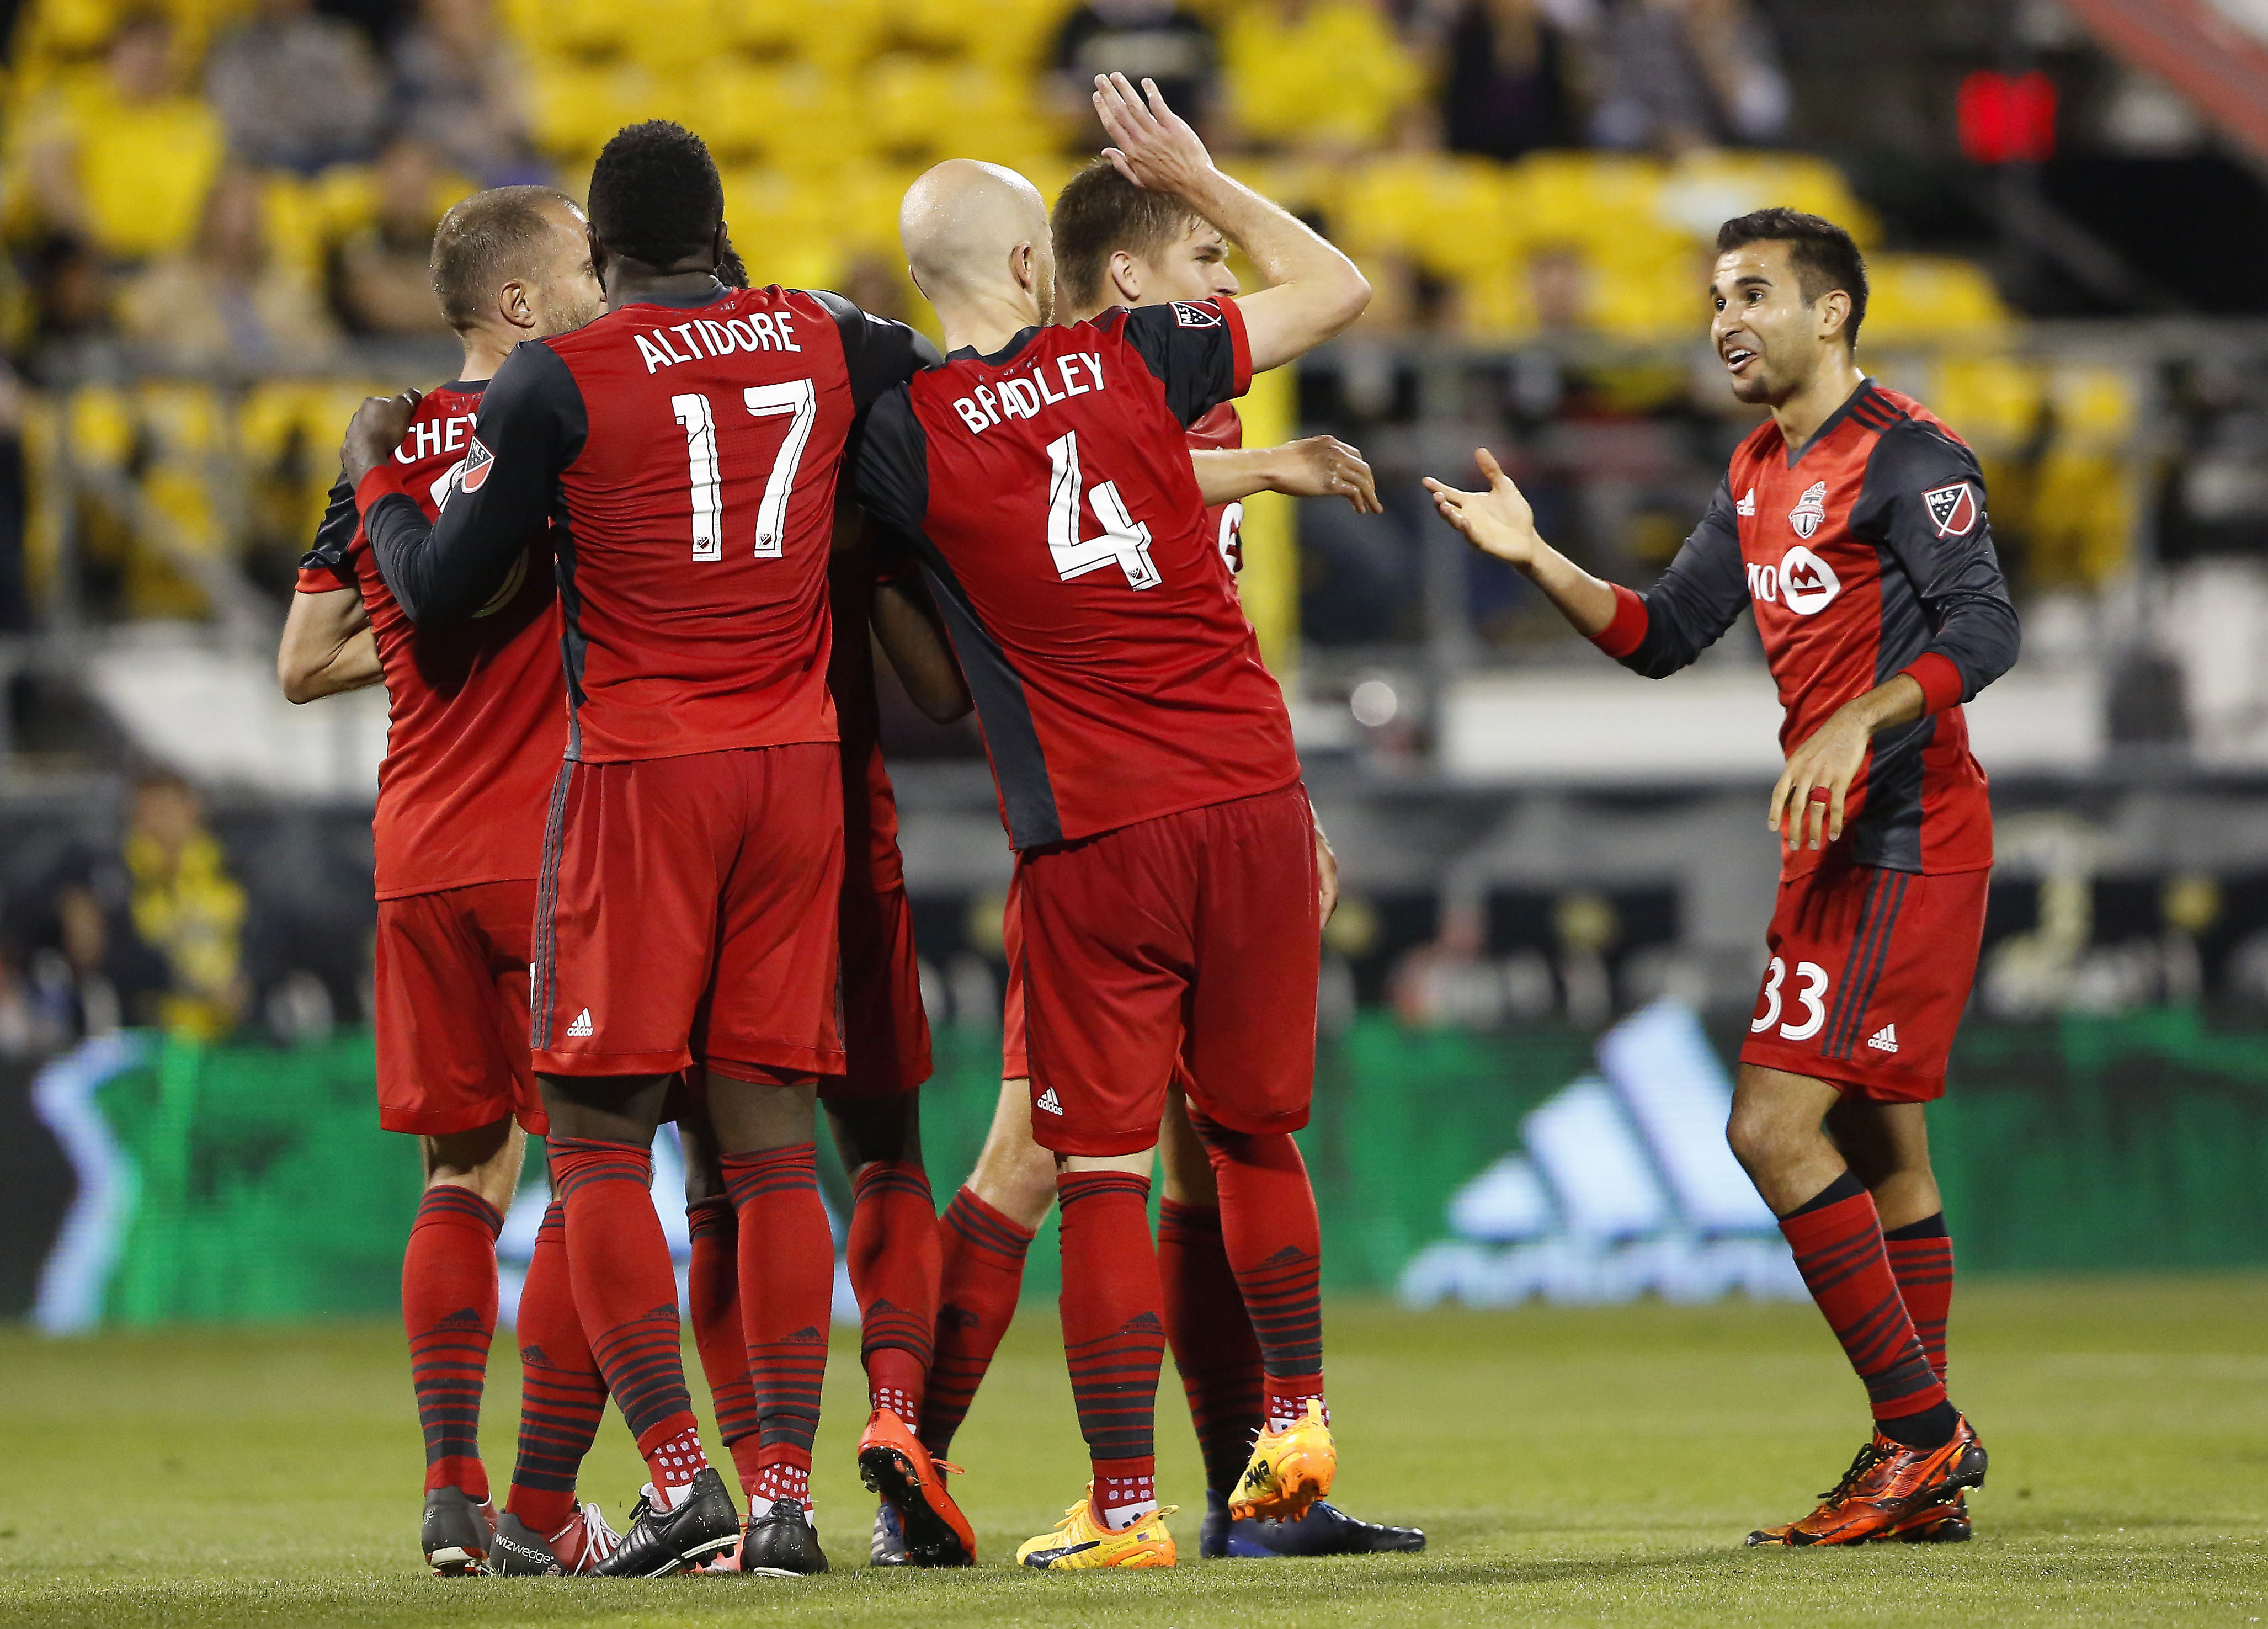 Toronto FC beats Minnesota United 3-2 for 6th straight win